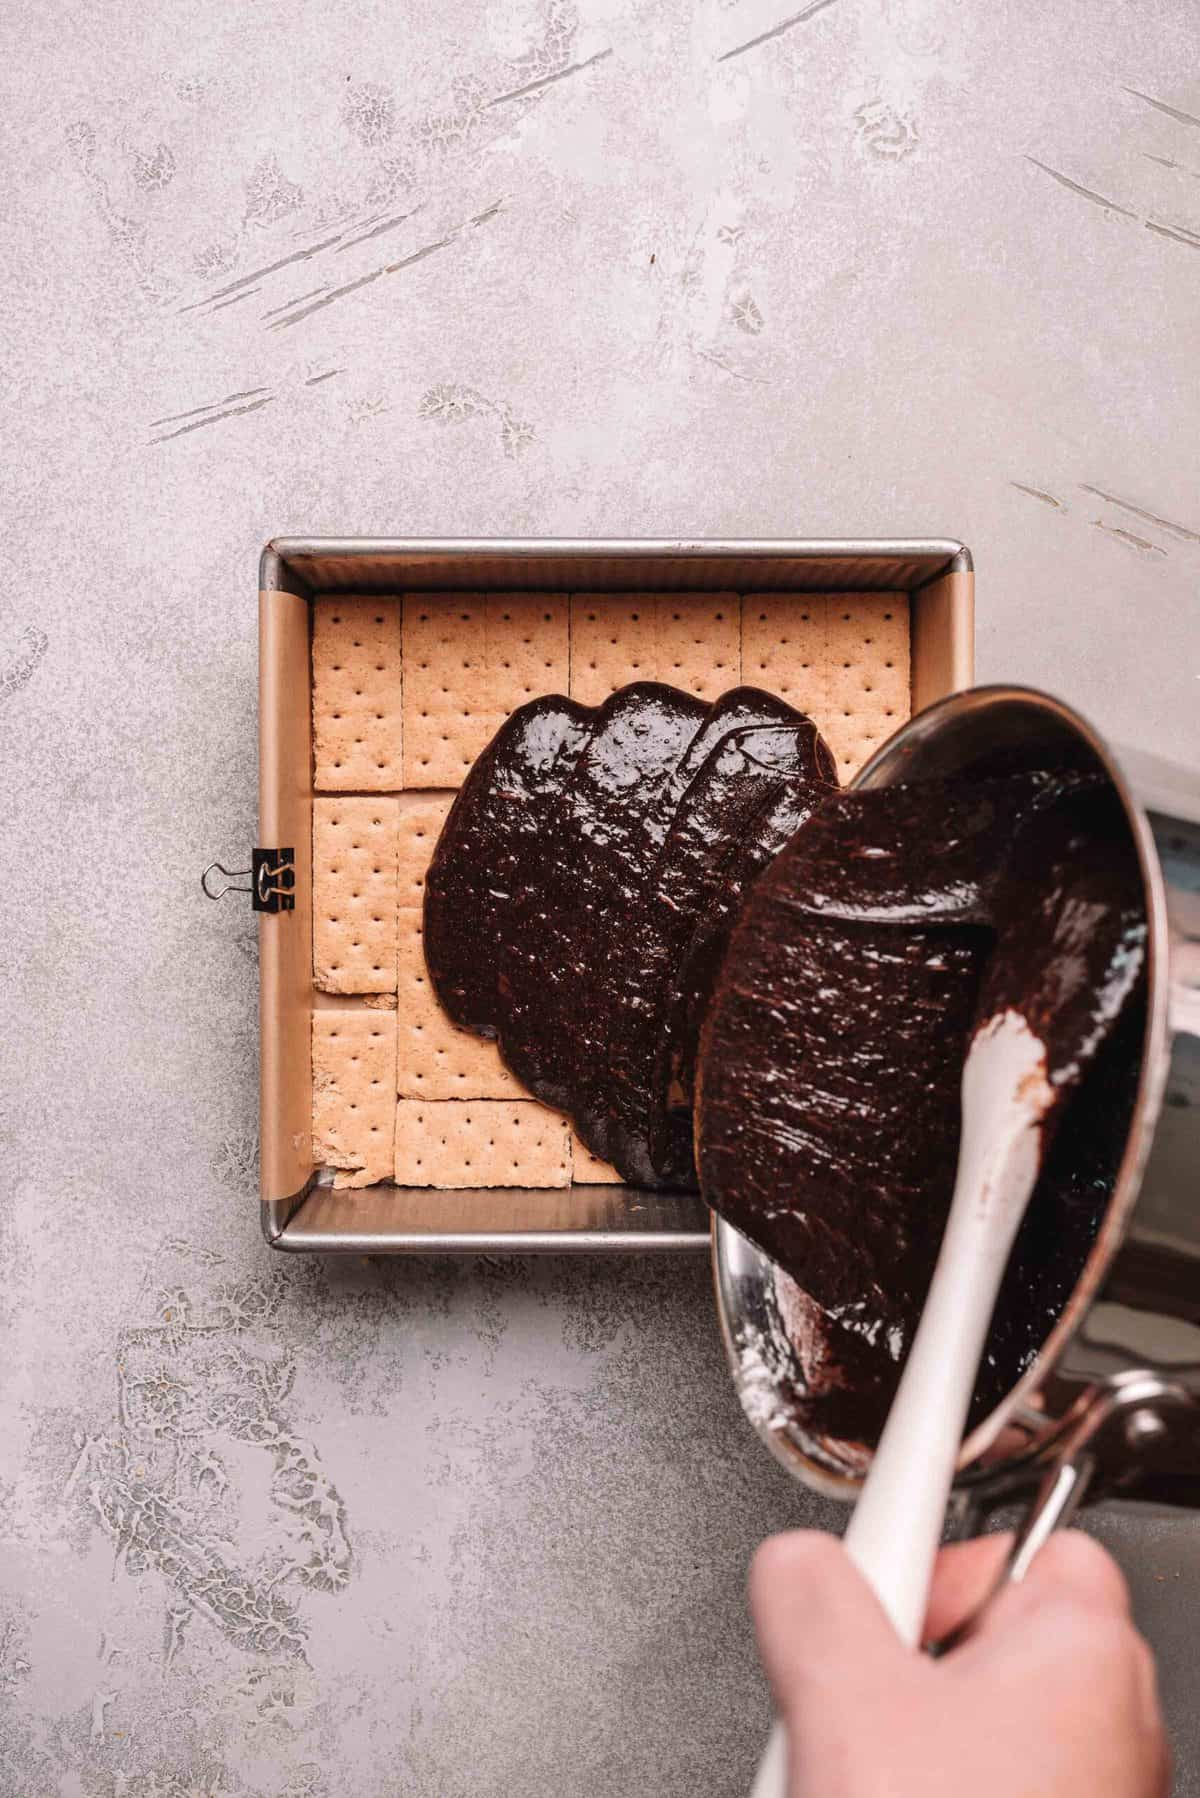 Brownie batter poured over graham crackers in a baking pan.